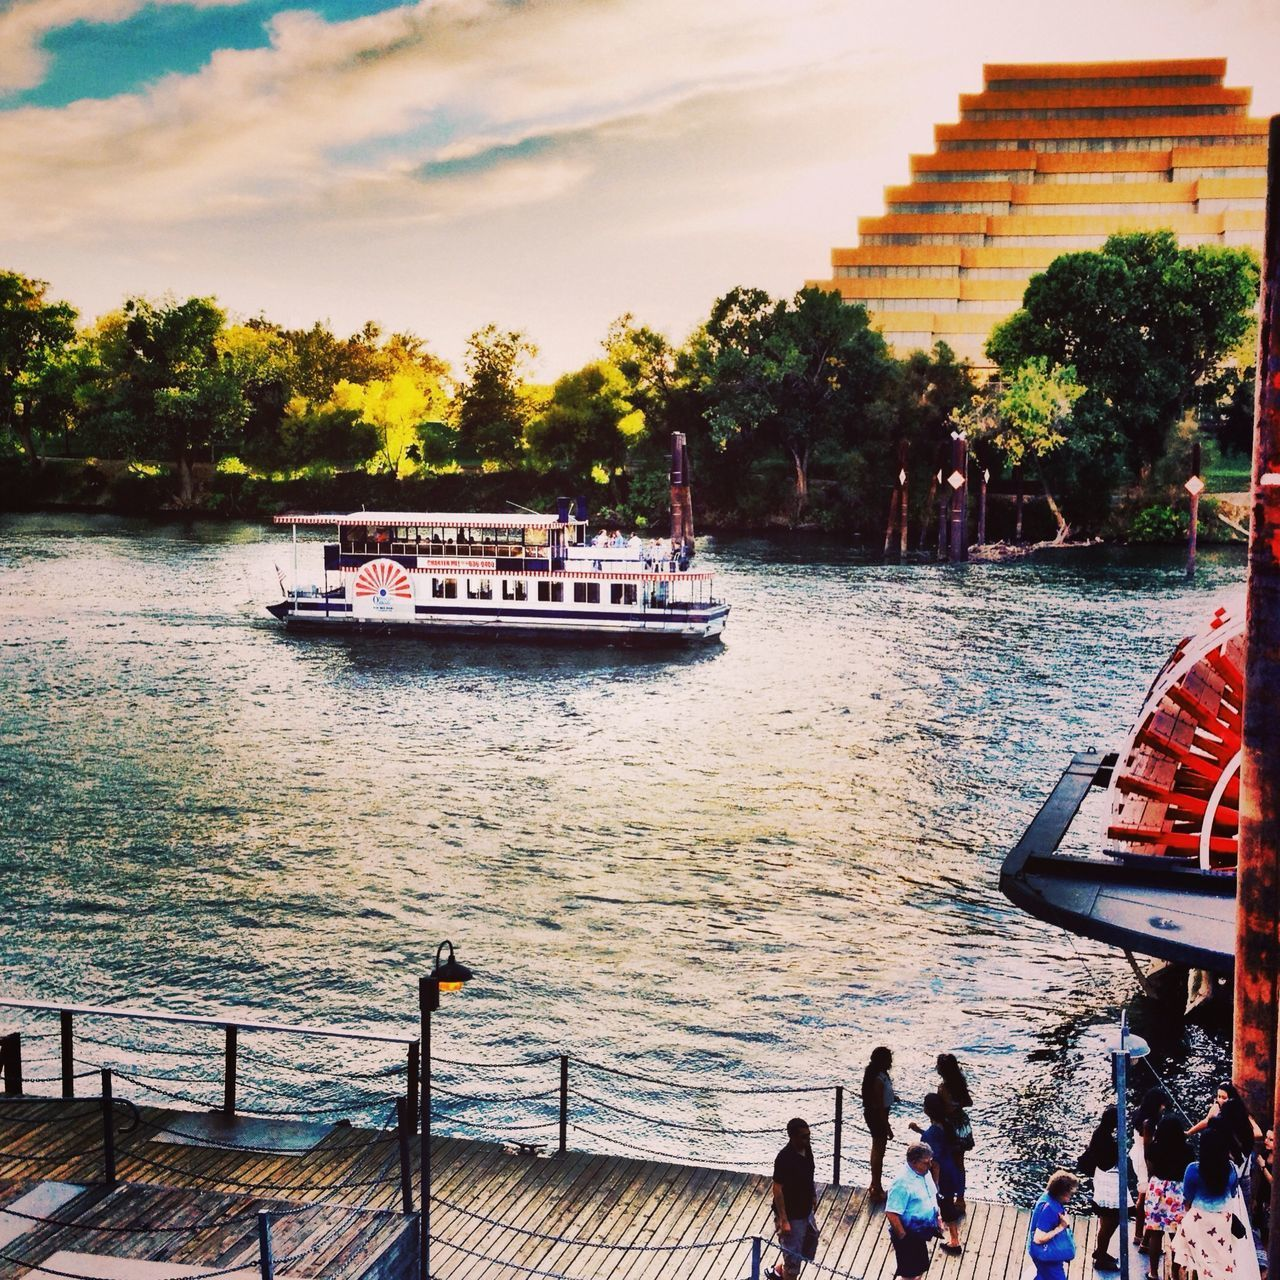 water, nautical vessel, transportation, mode of transportation, sky, real people, nature, group of people, architecture, men, built structure, tree, travel, large group of people, lifestyles, crowd, outdoors, railing, women, passenger craft